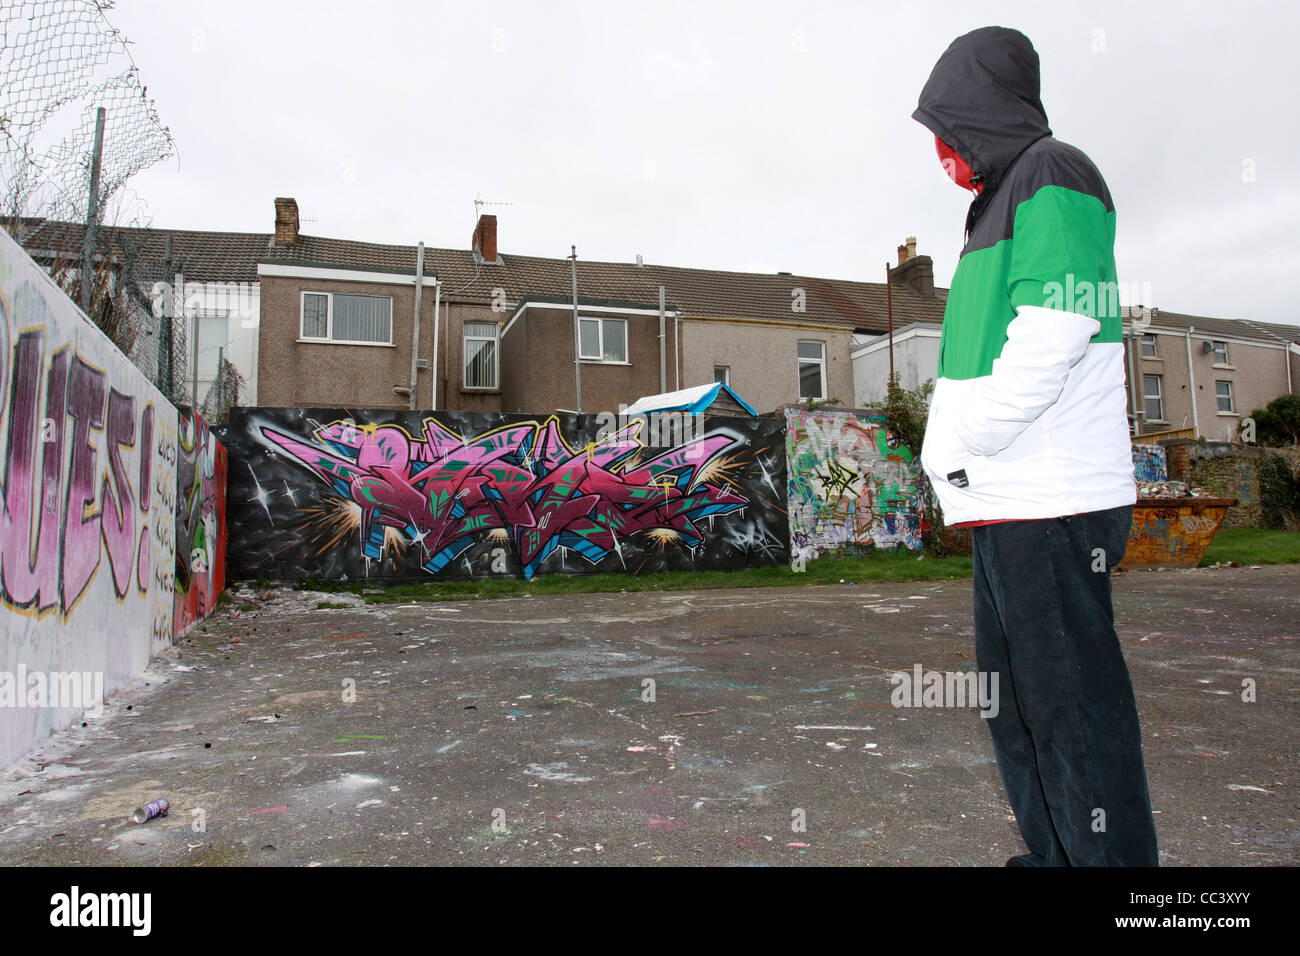 A Graffiti Writer Poses Anonymously Wearing A Hooded Jacket Inform Of One Of His Pieces A Large Scale Wall Mural